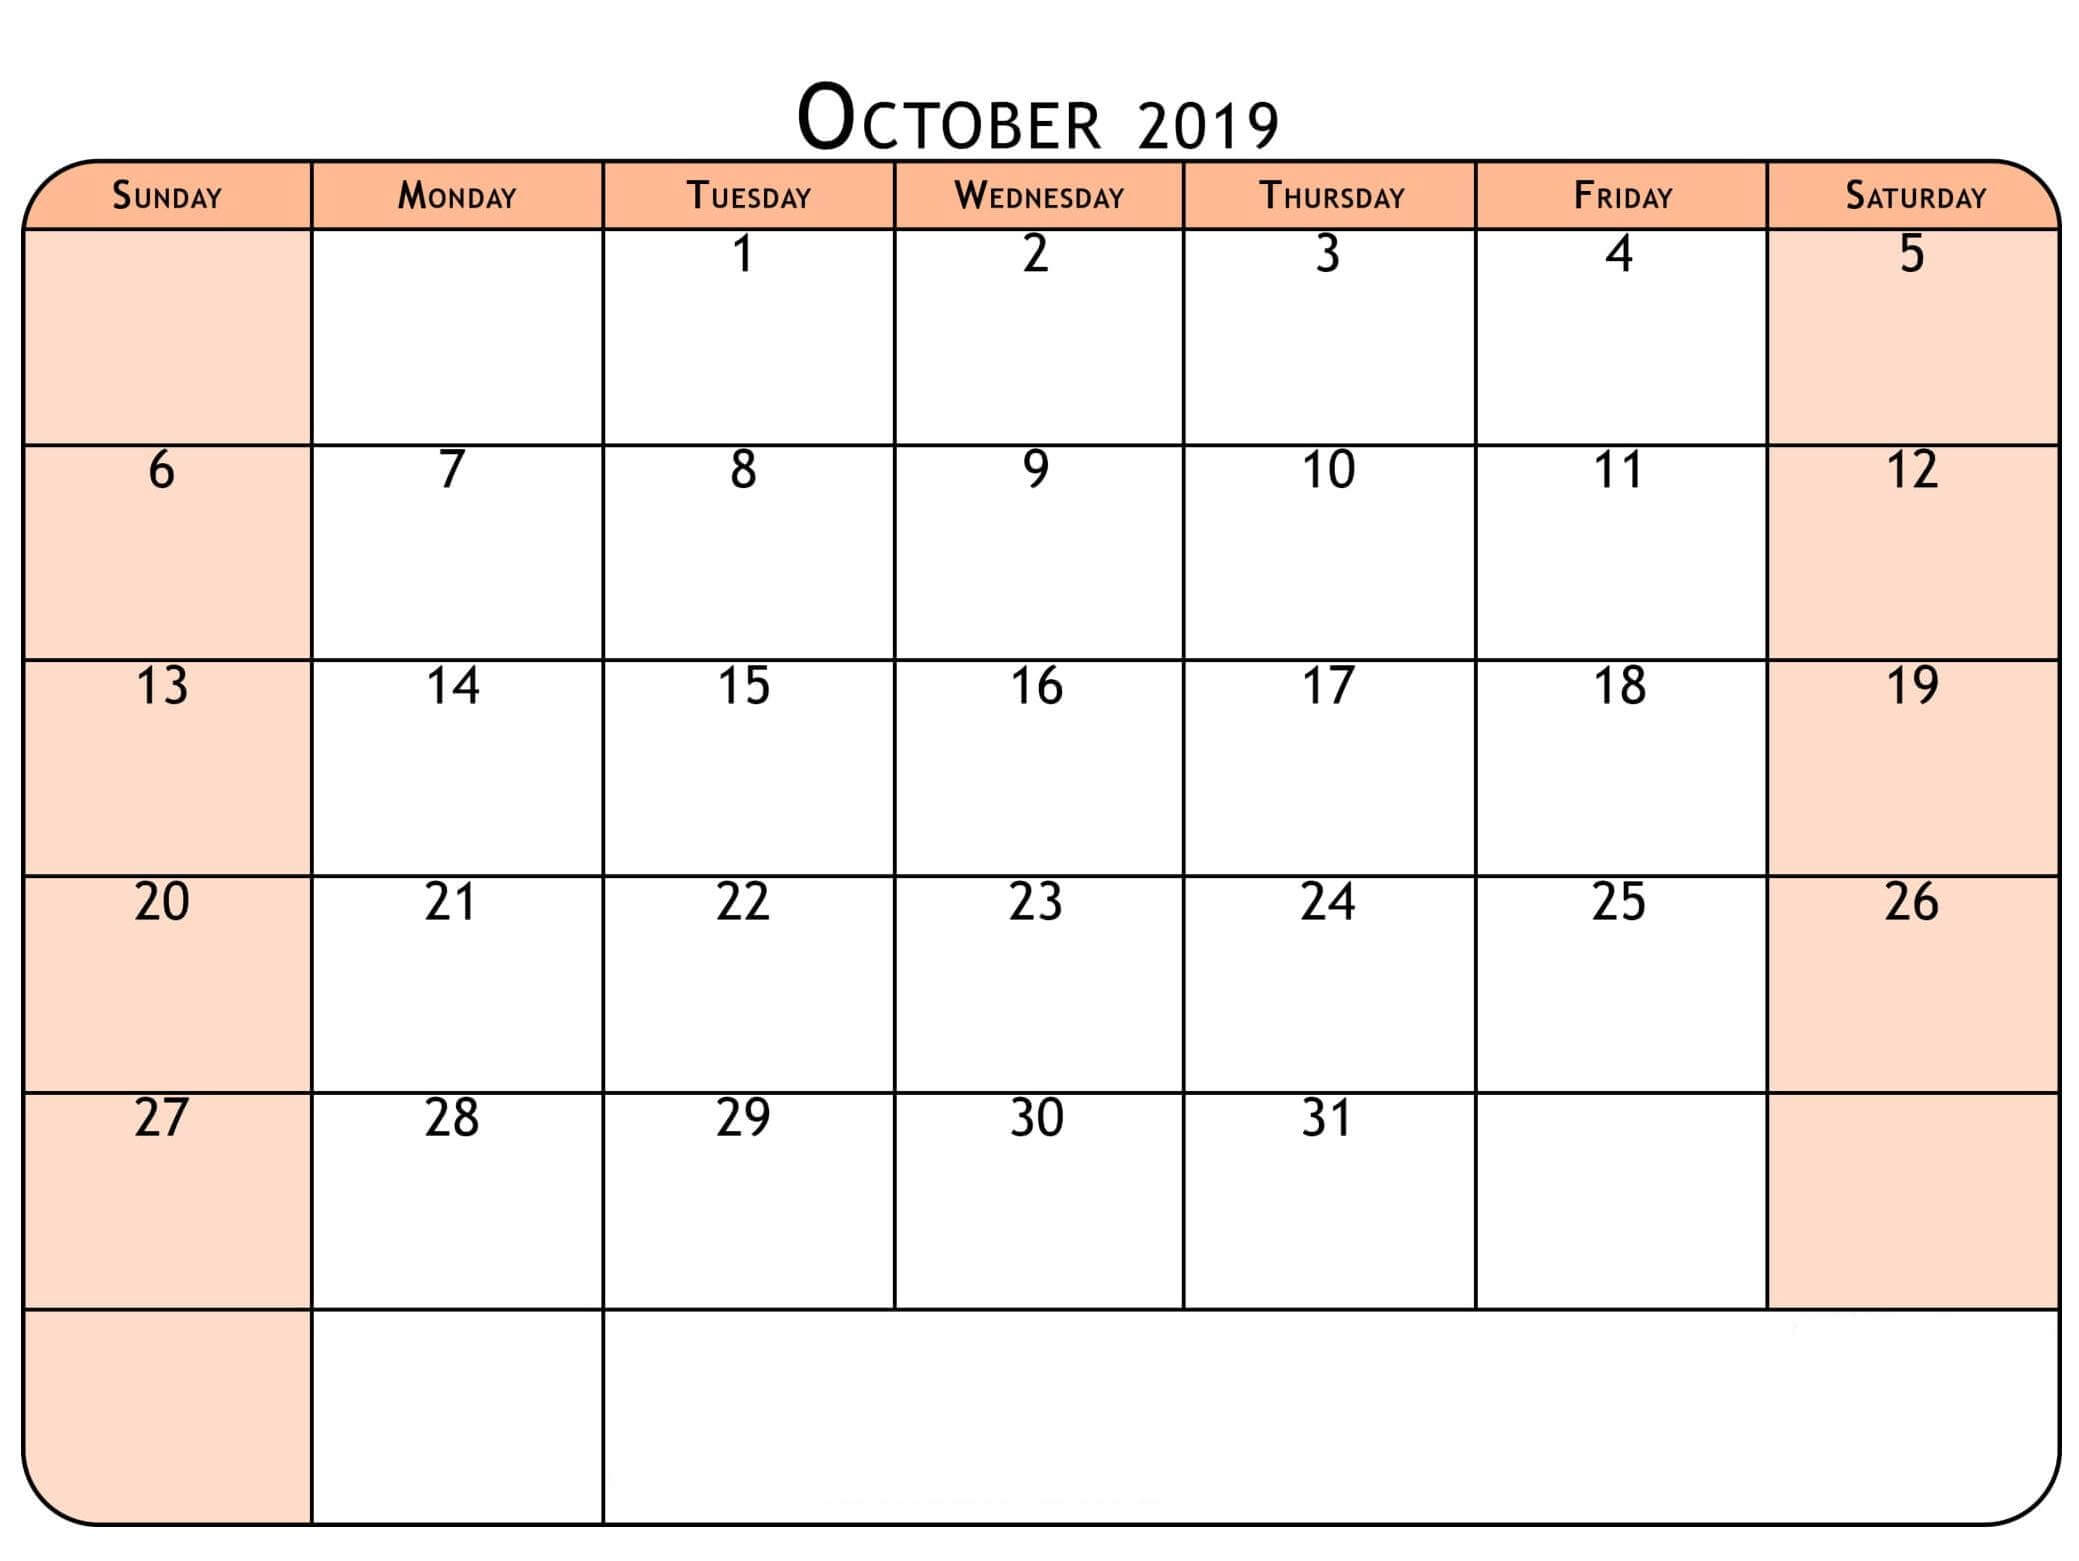 Free Printable Calendar for October 2019